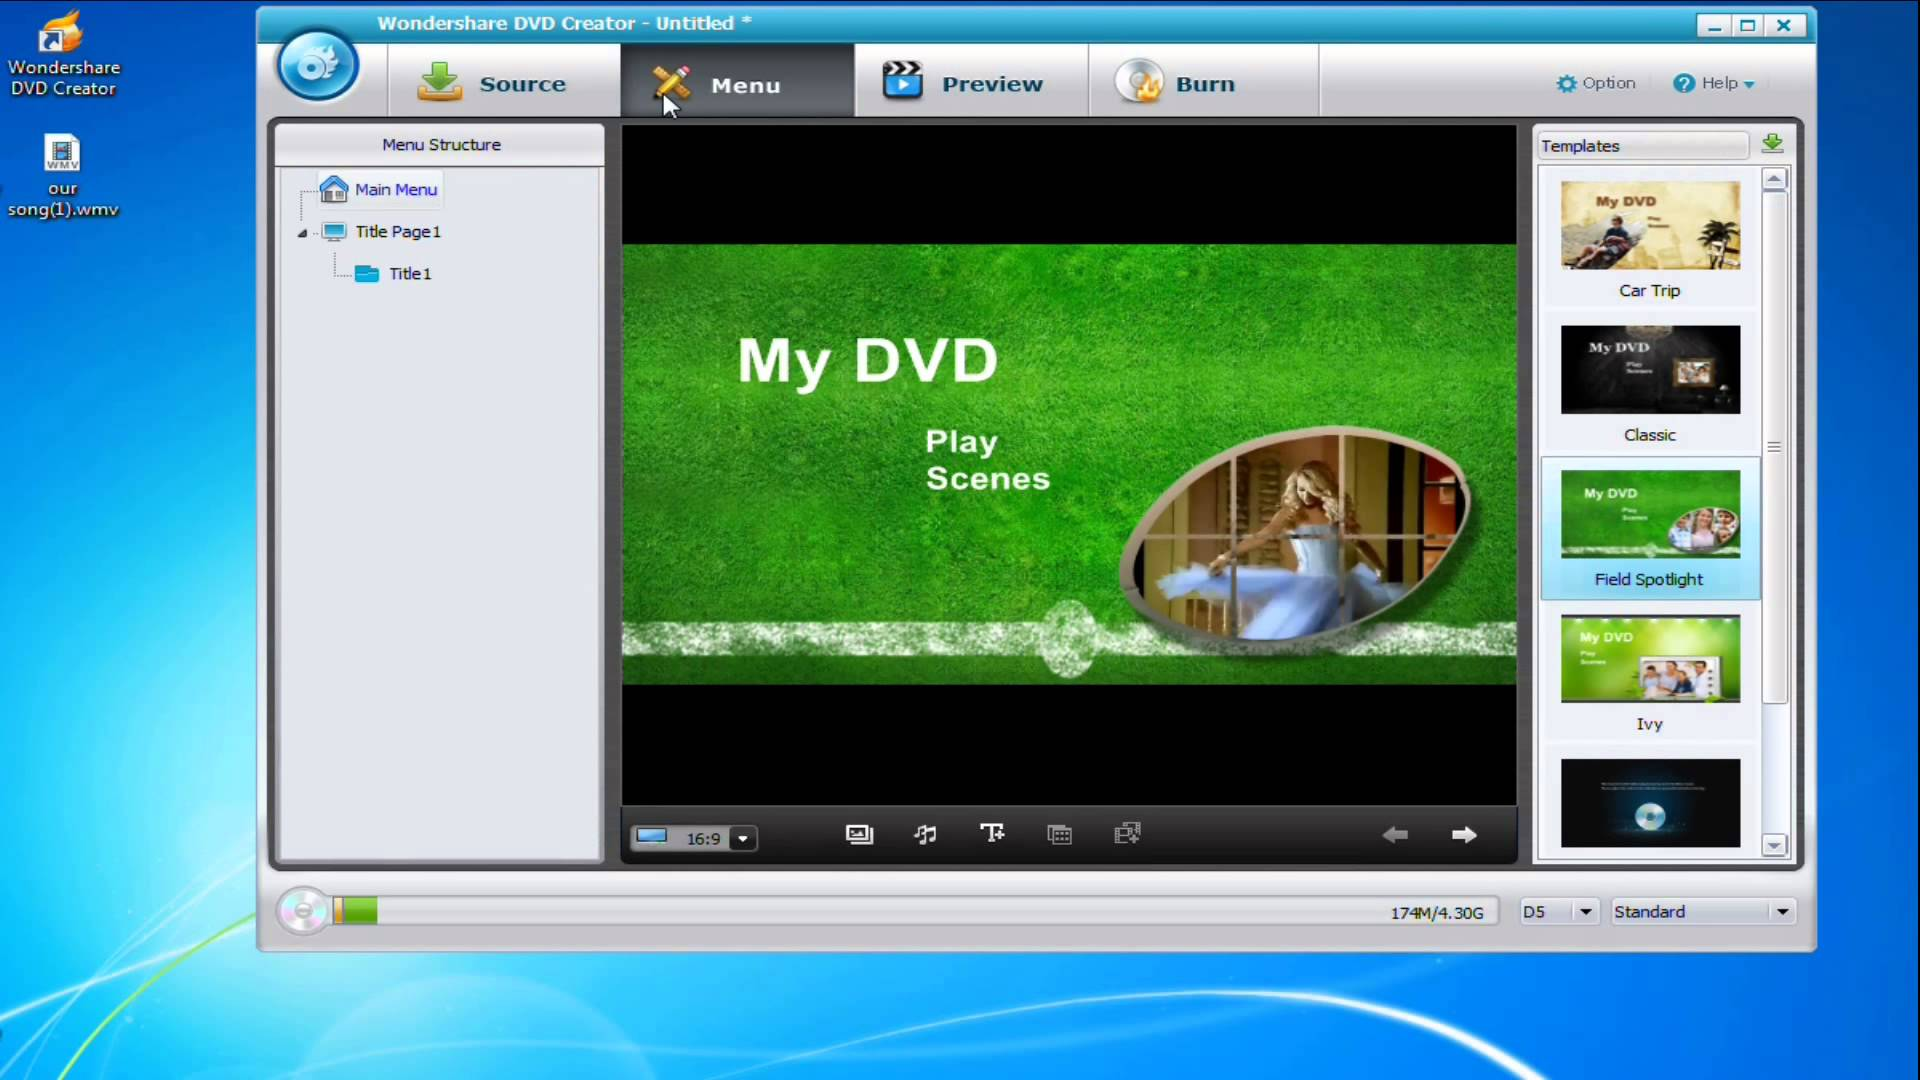 Review: Wondershare DVD Creator - simply but powerful